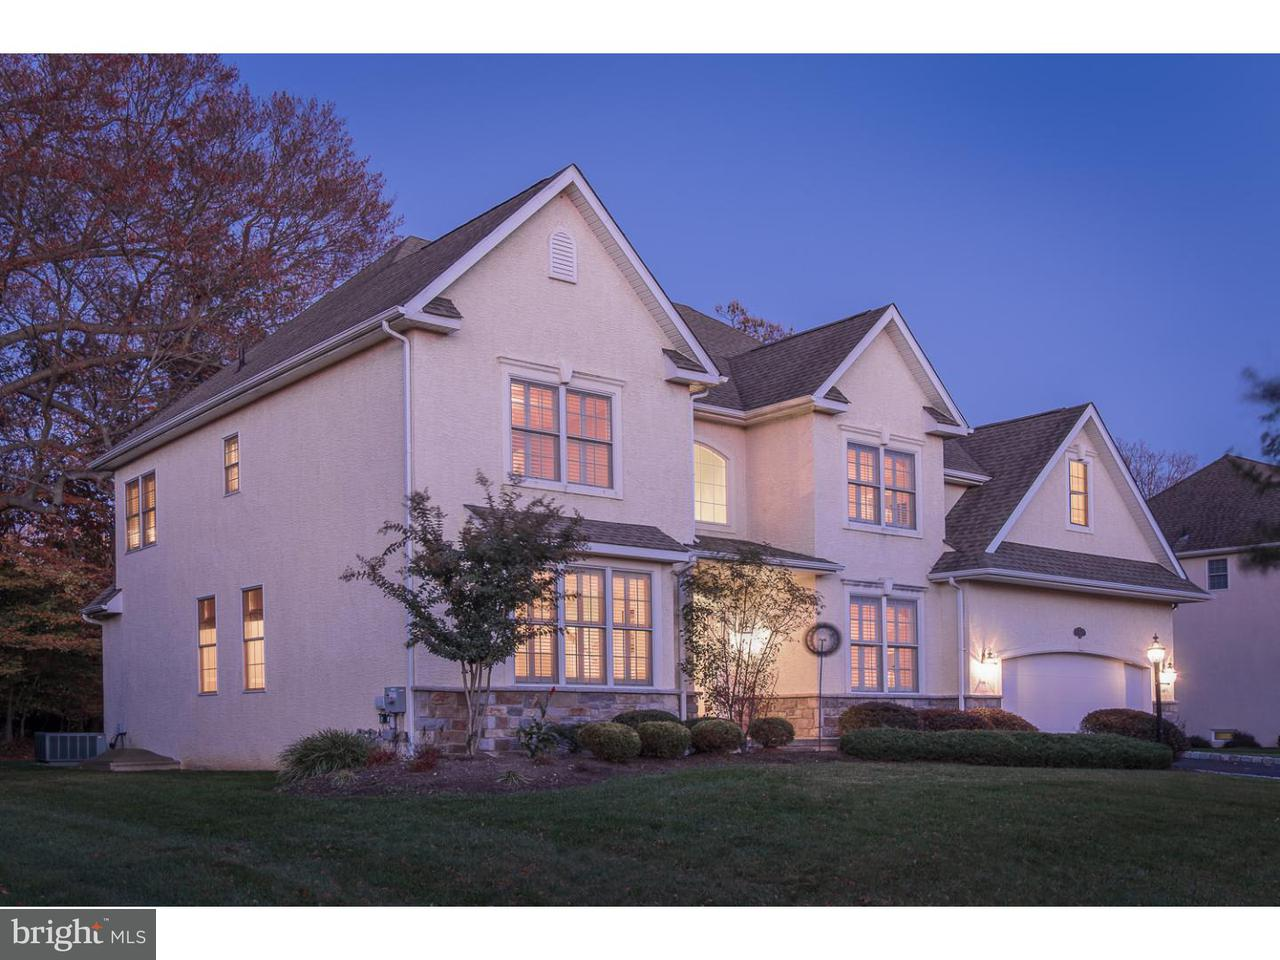 Single Family Home for Sale at 103 CETON Court Broomall, Pennsylvania 19008 United States